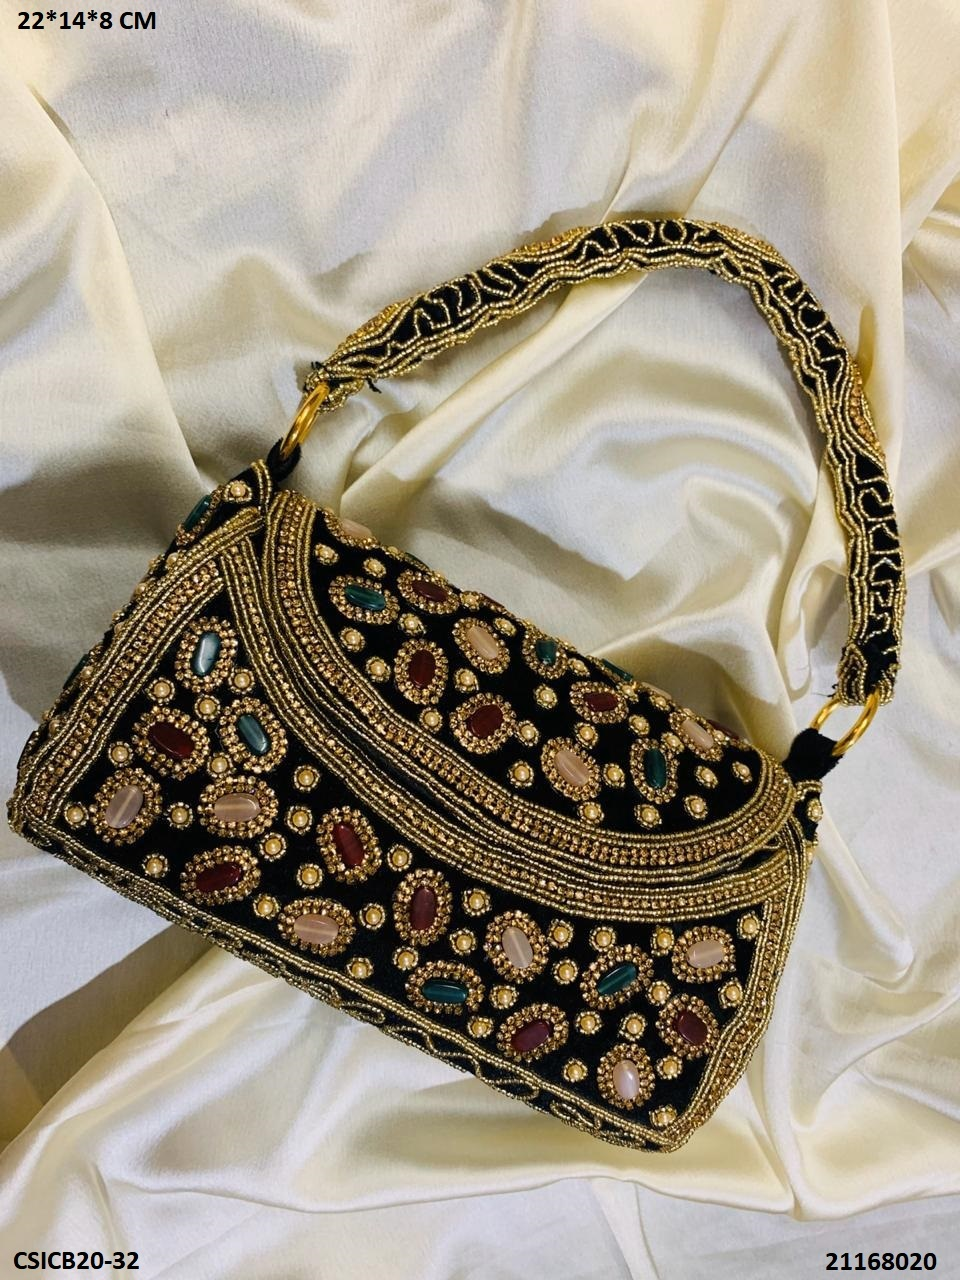 Handcrafted Bridal Clutch Bags